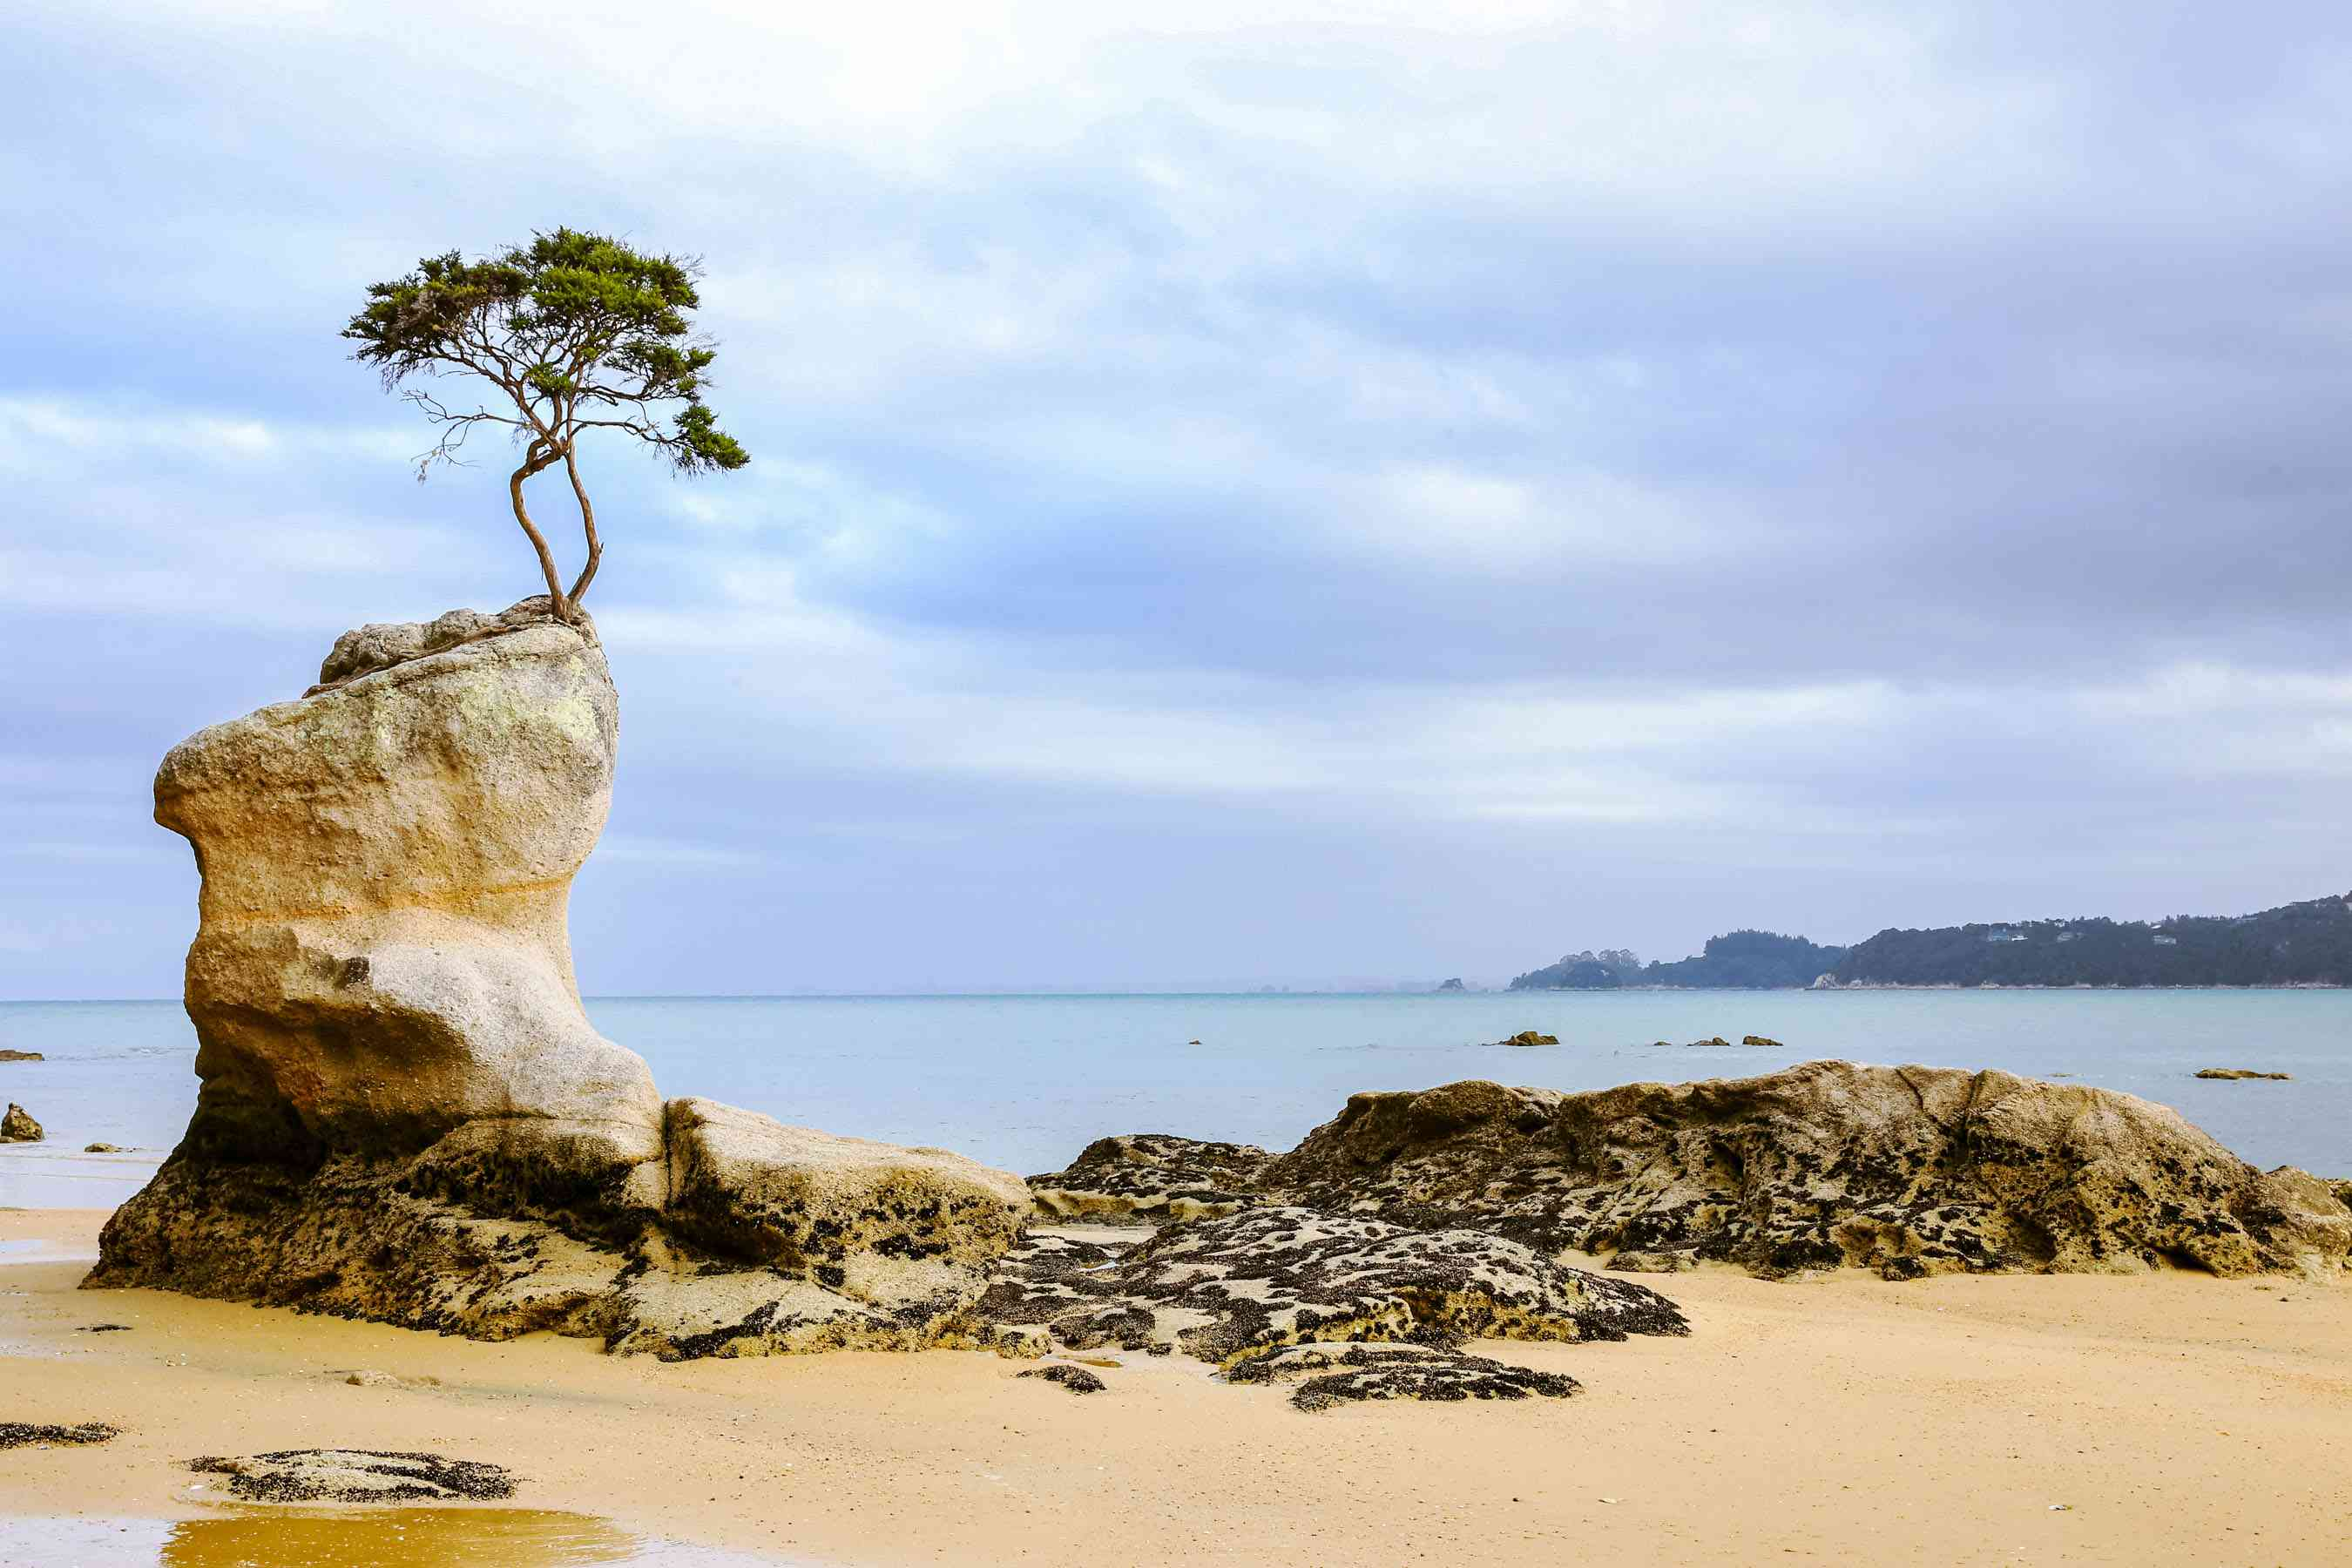 A small tree growing on top of a boulder in Abel Tasman